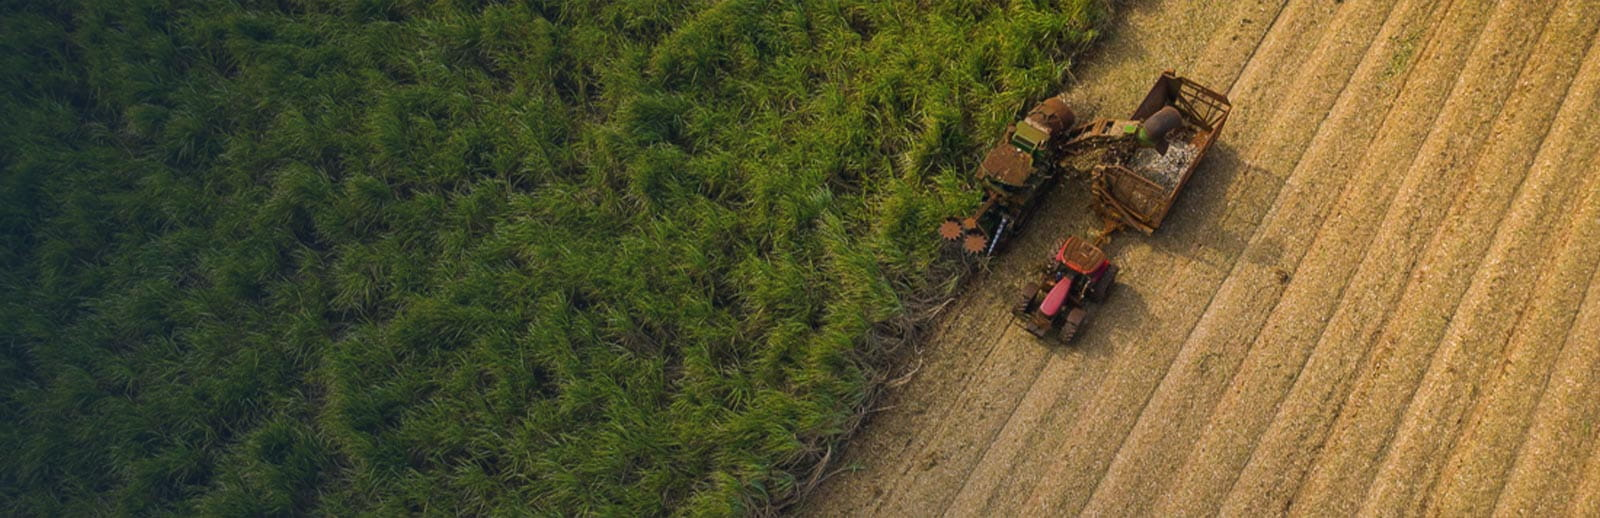 An aerial view of a tractor and farm equipment clearing trees